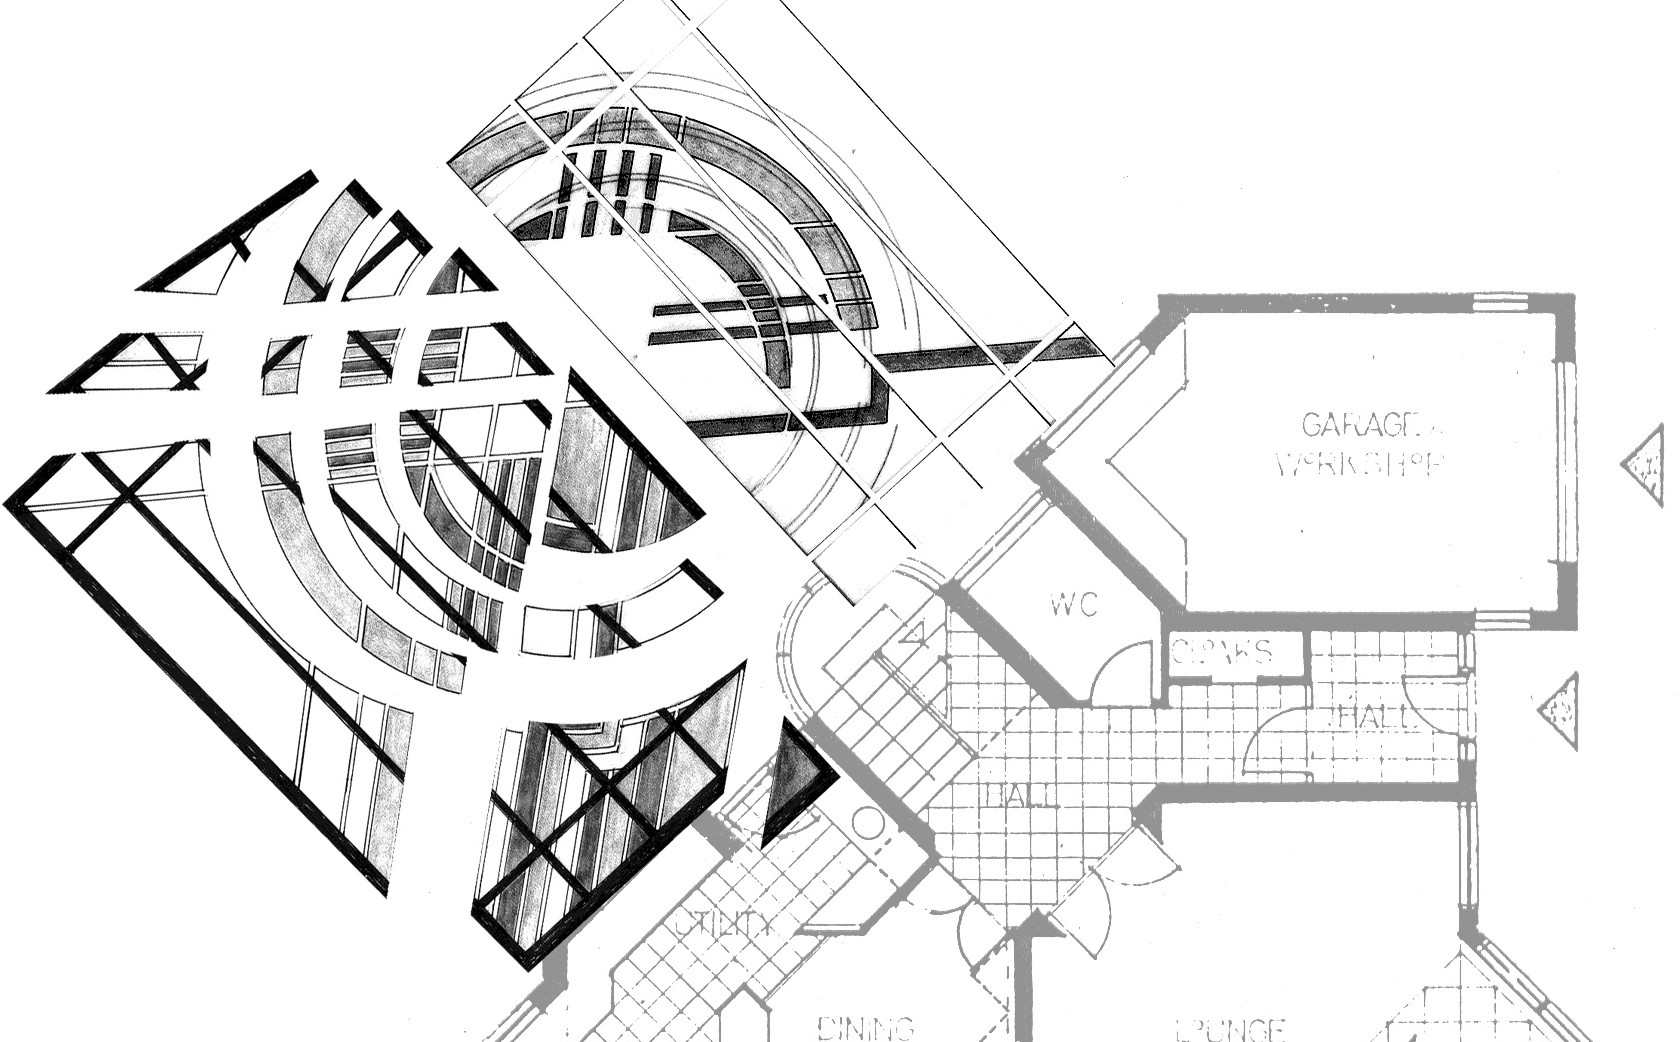 Relationship between Design and architectural layout